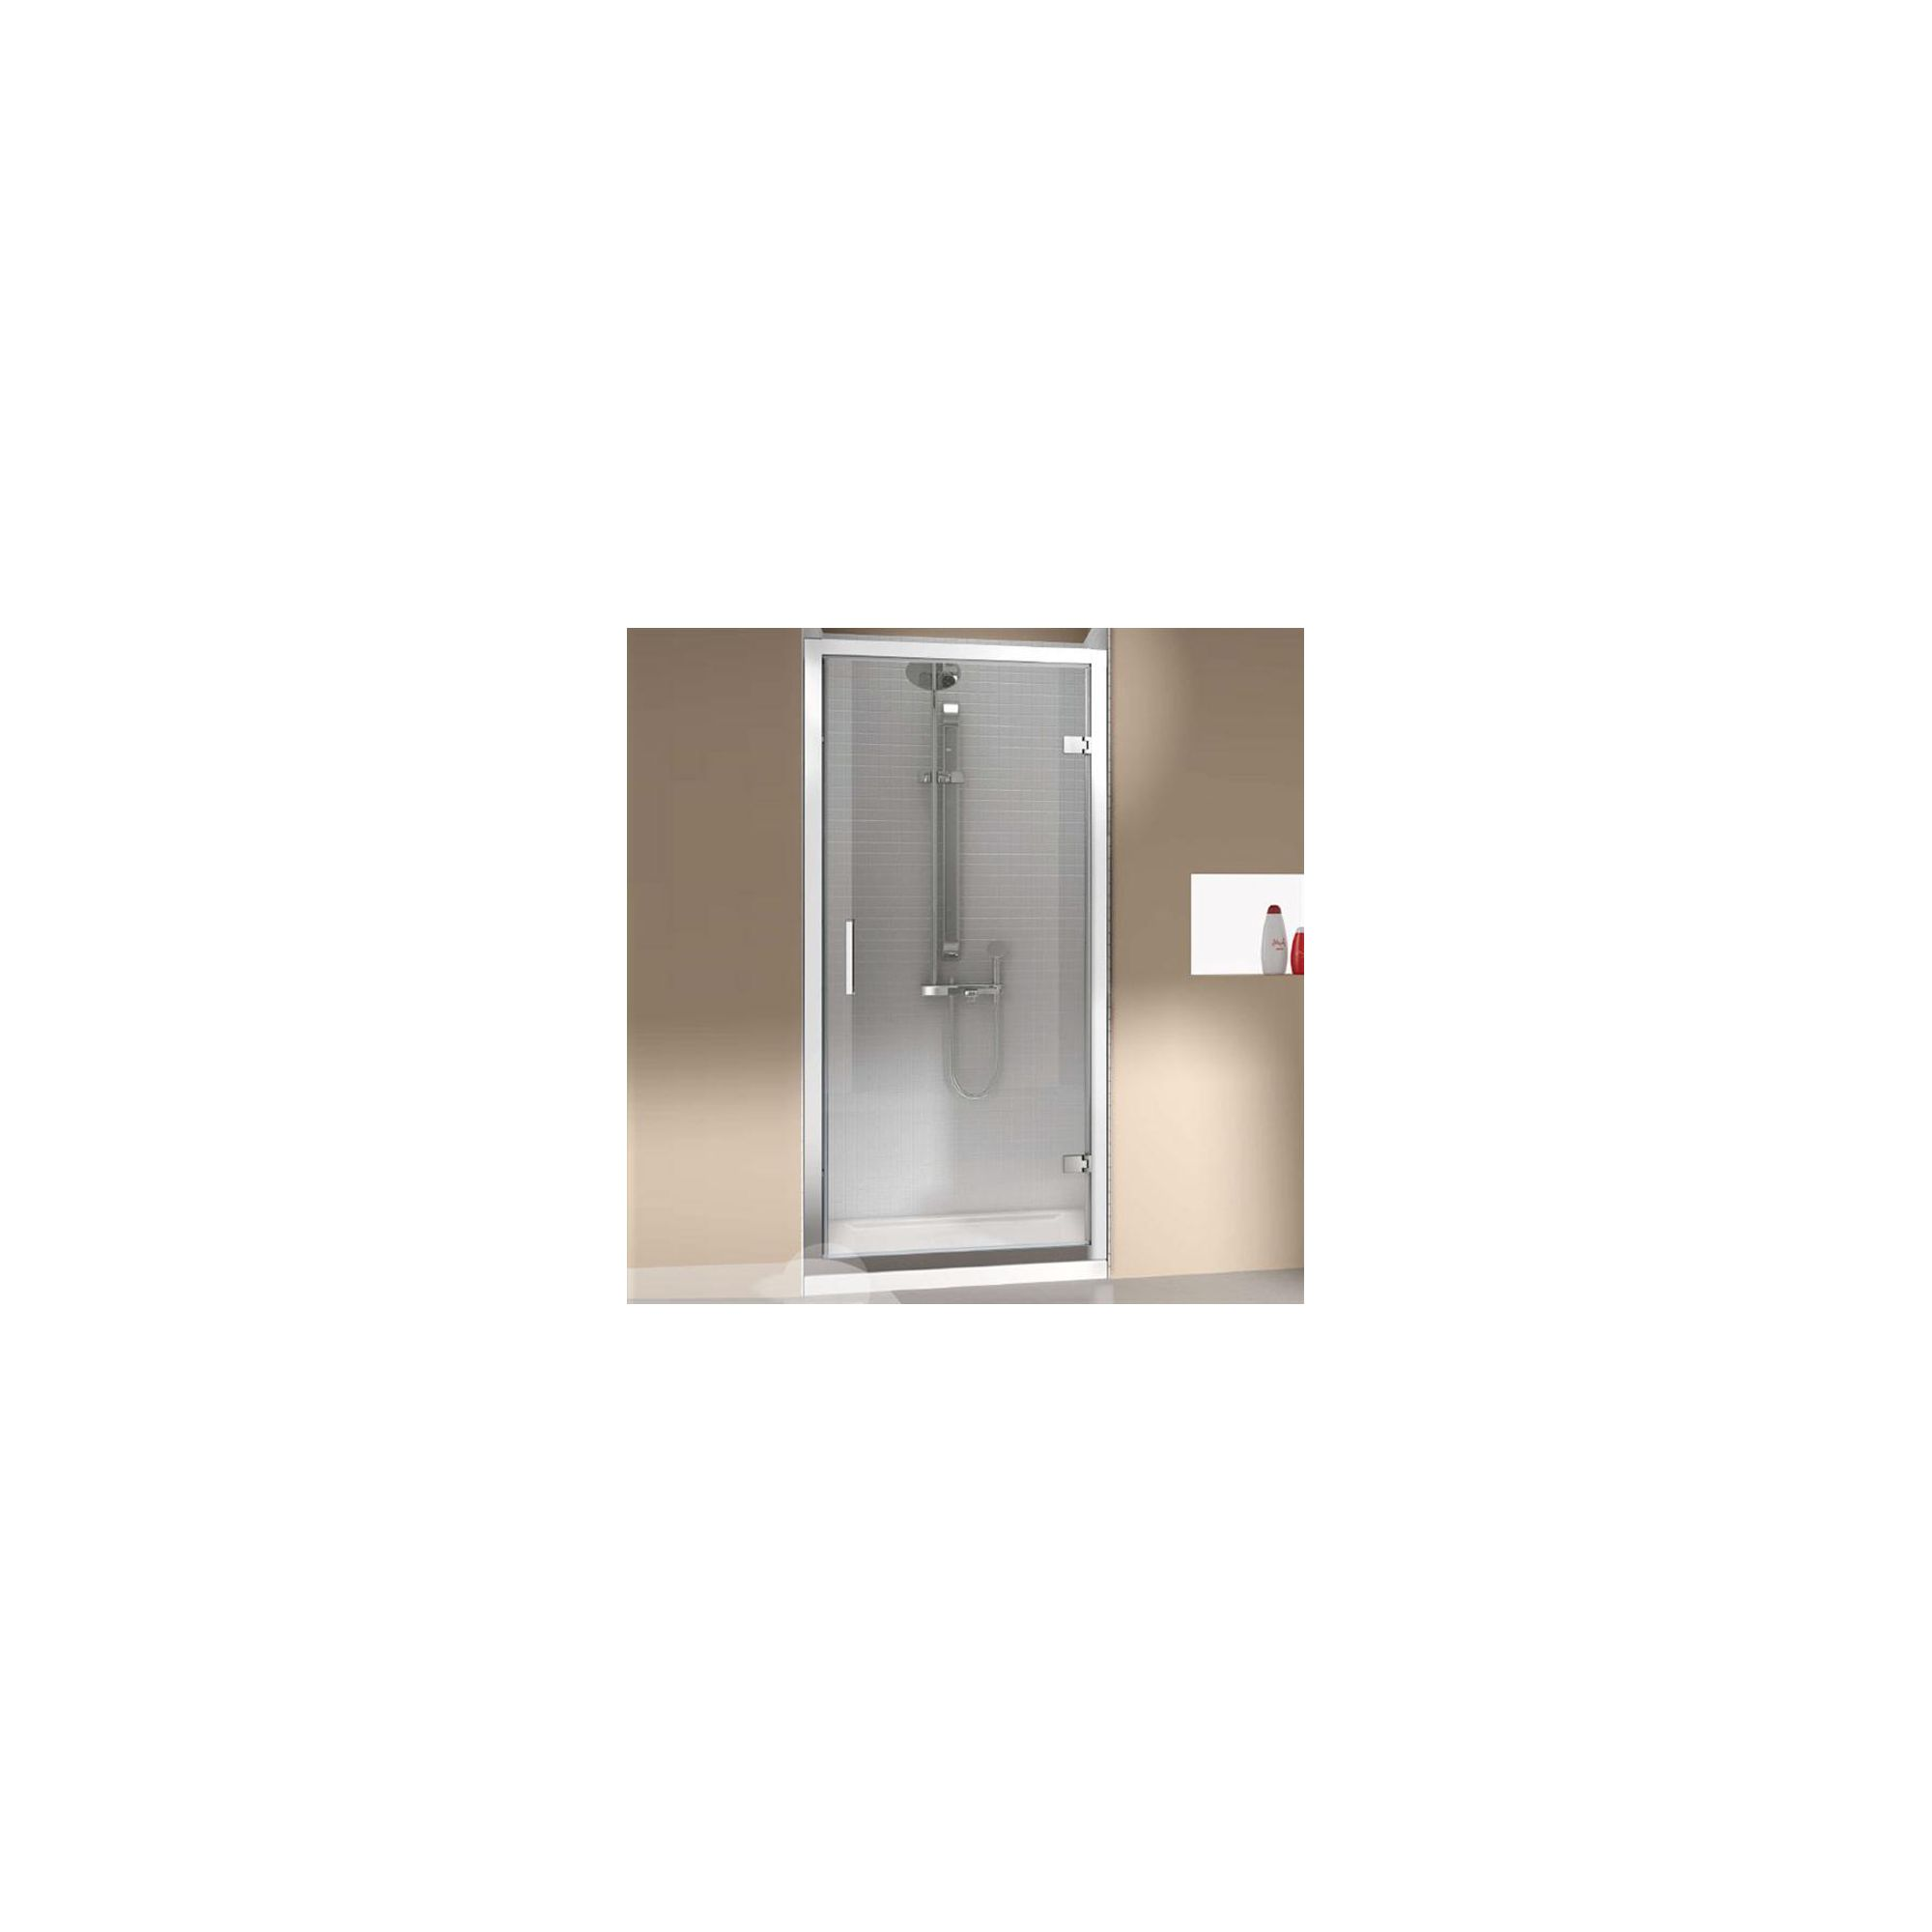 Merlyn Vivid Eight Hinged Shower Door, 760/800mm Wide, 8mm Glass at Tesco Direct